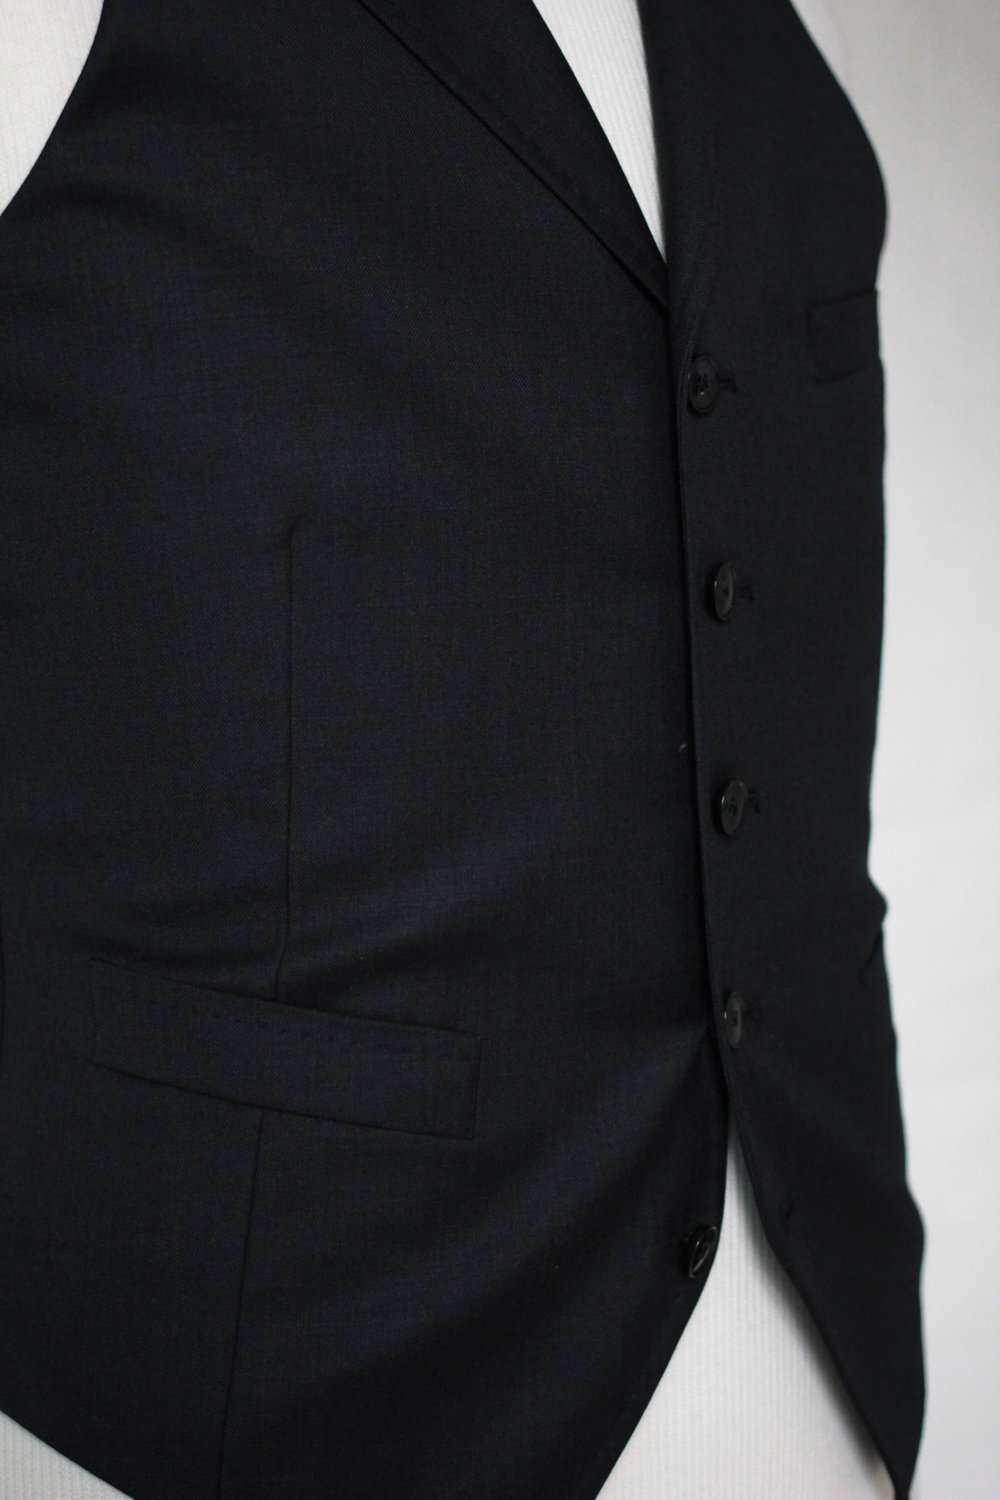 Pointed bottom with Five button front